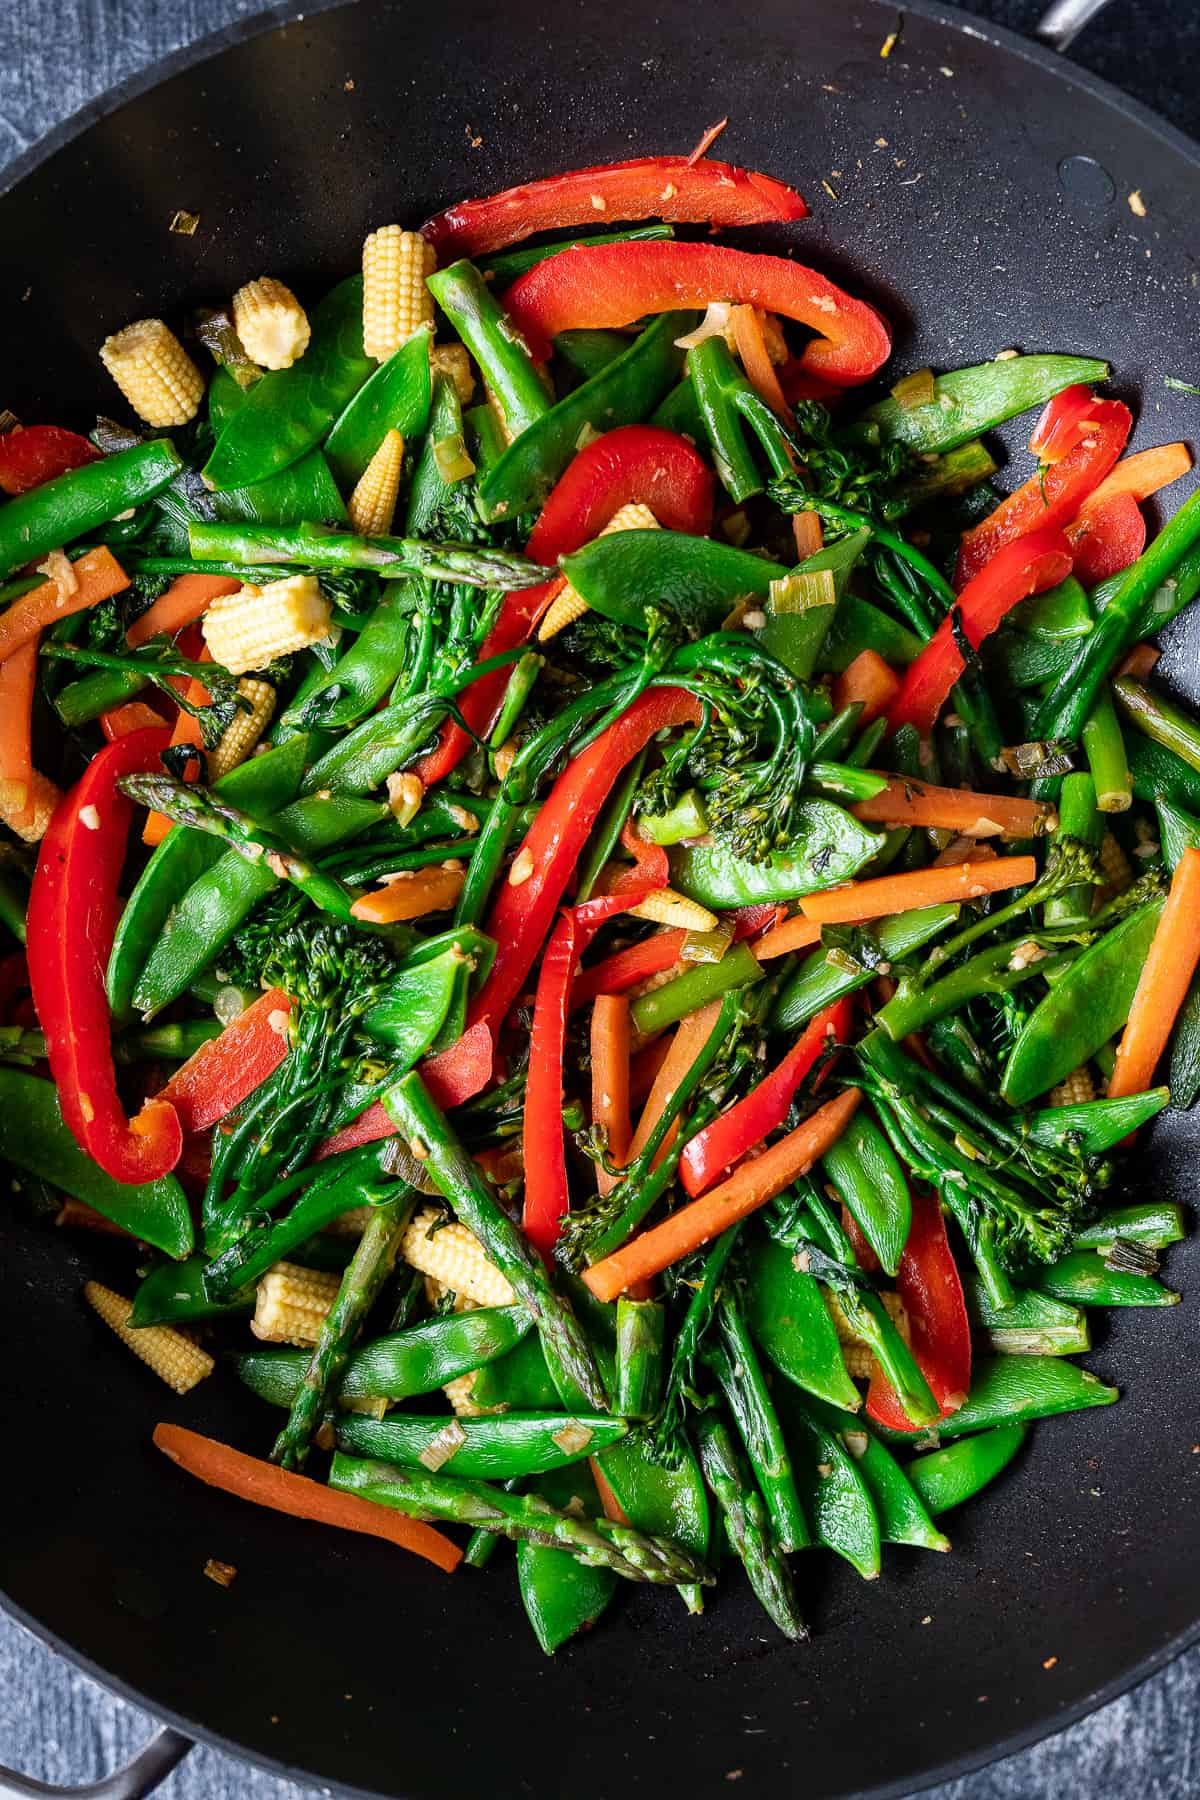 stir fried vegetables in a wok